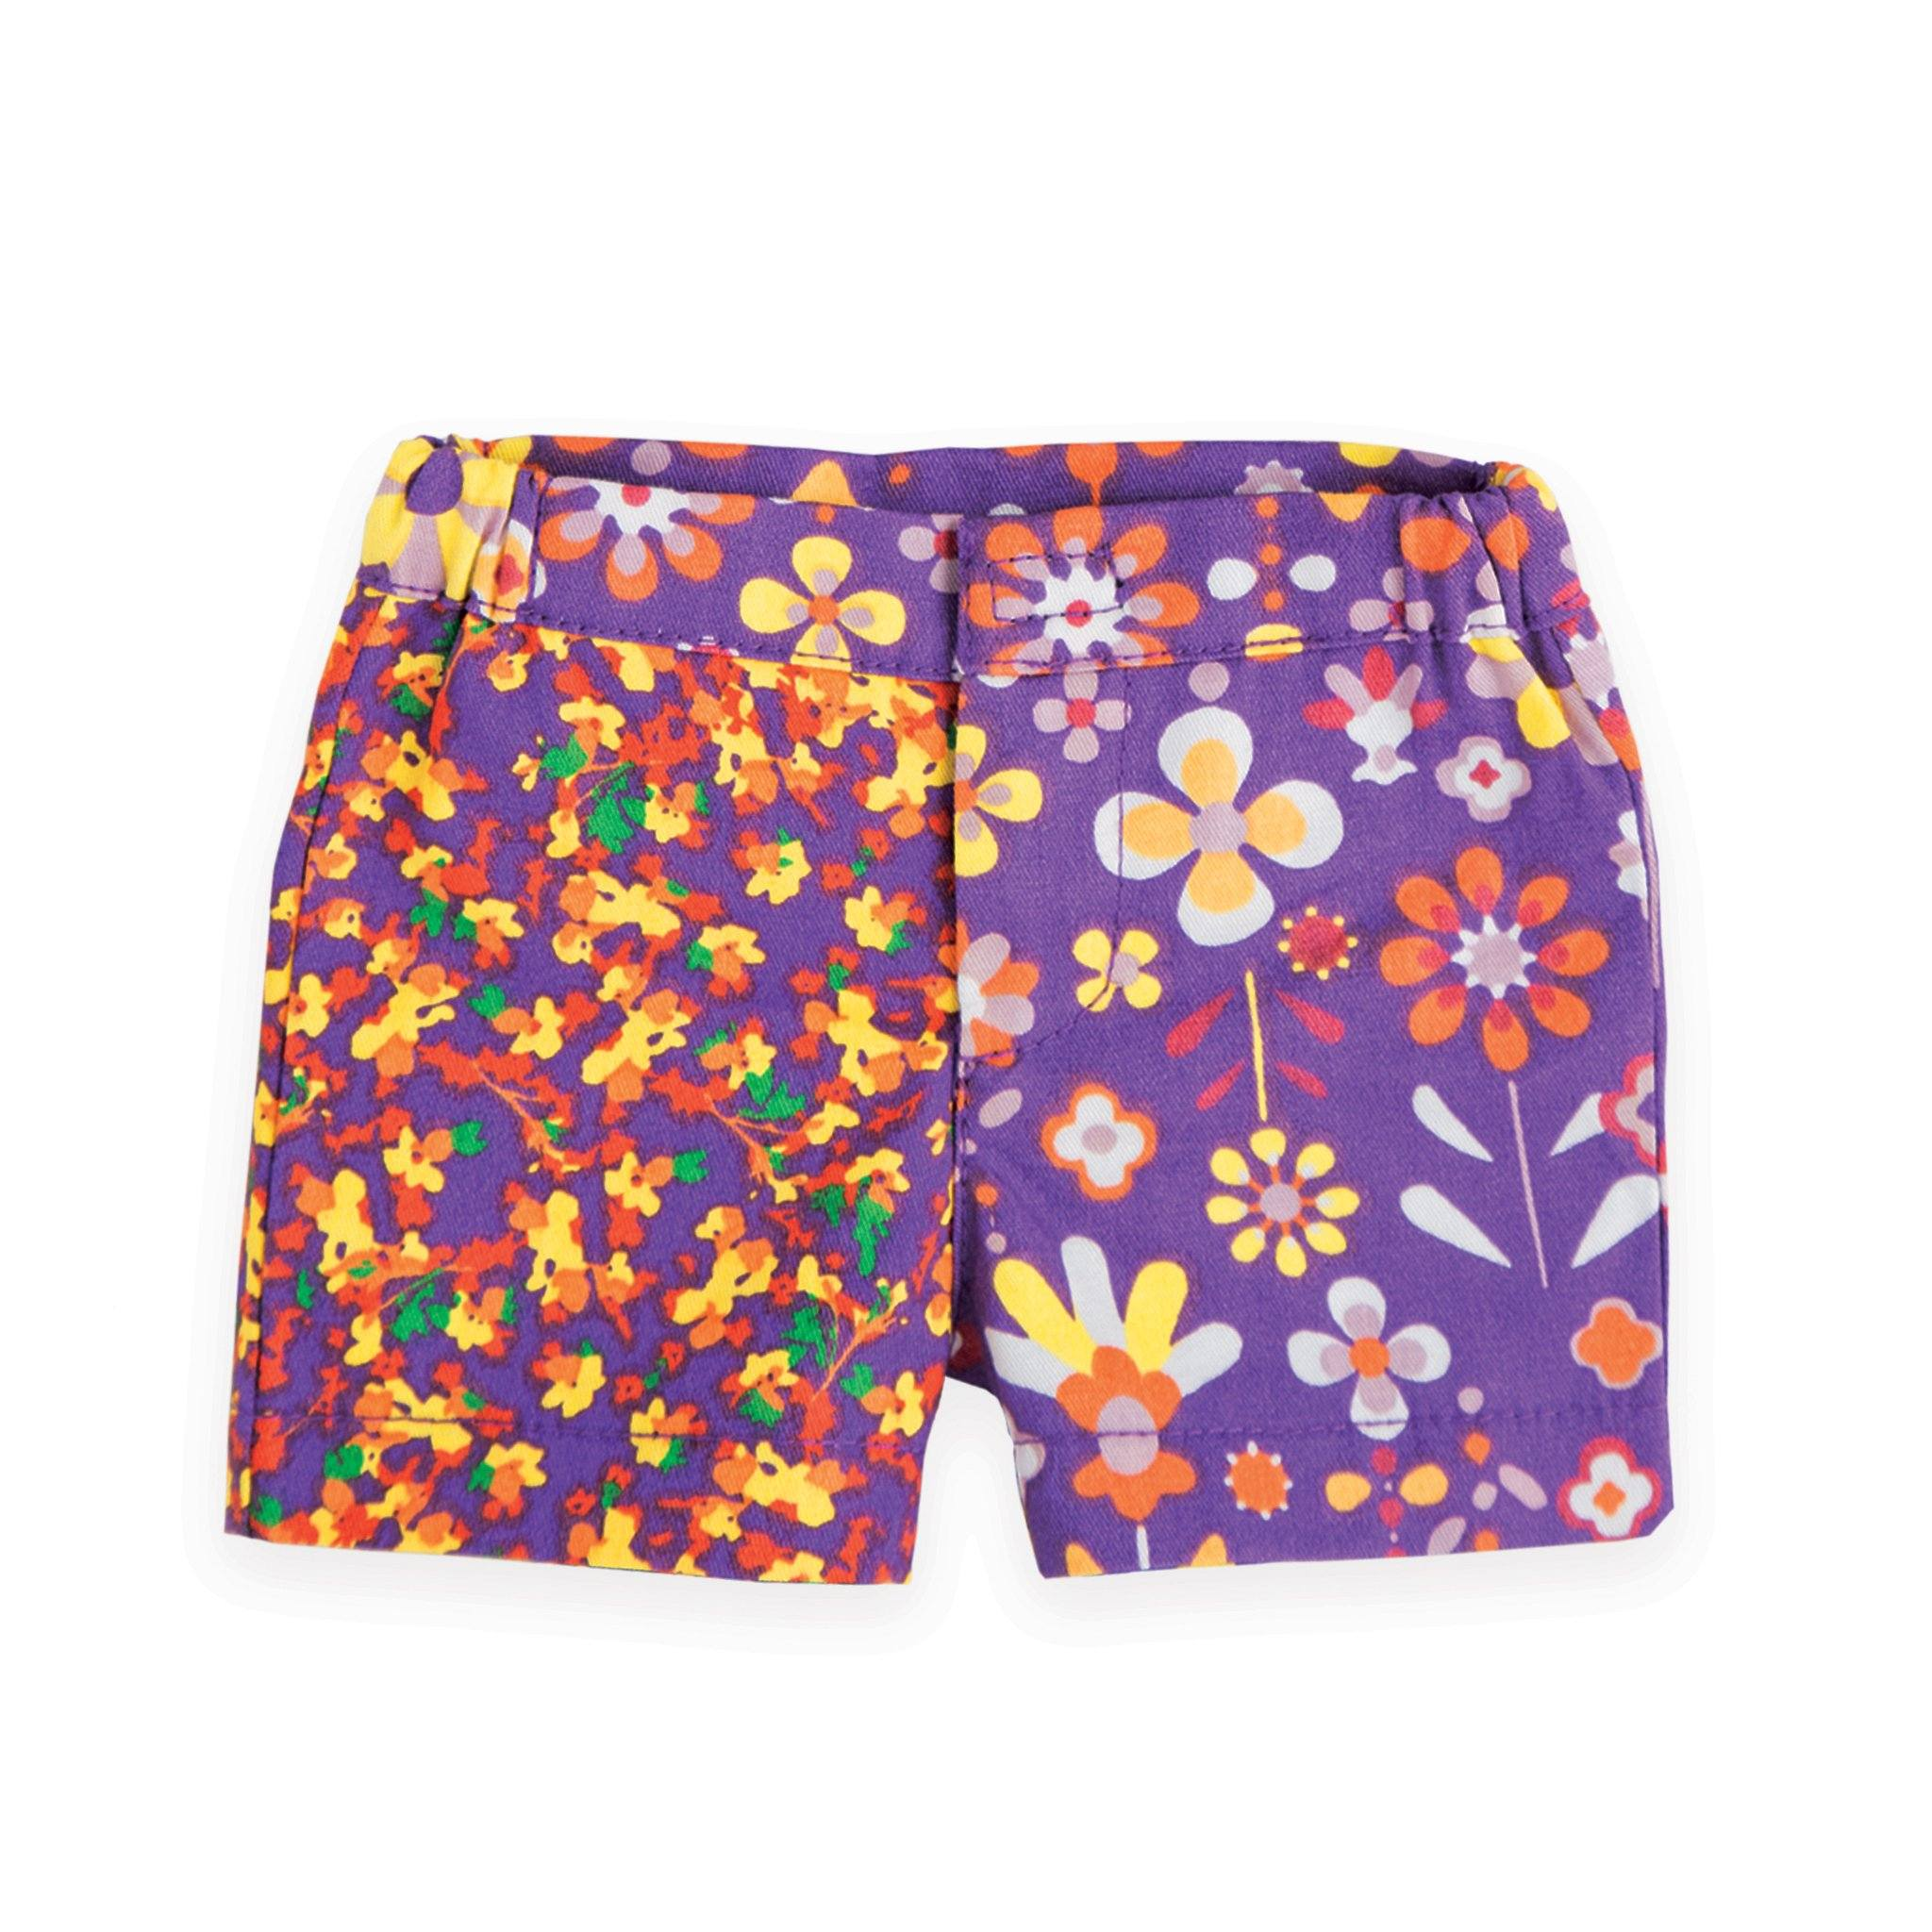 Flower Power purple multicolour floral shorts  fits all 18 inch dolls.